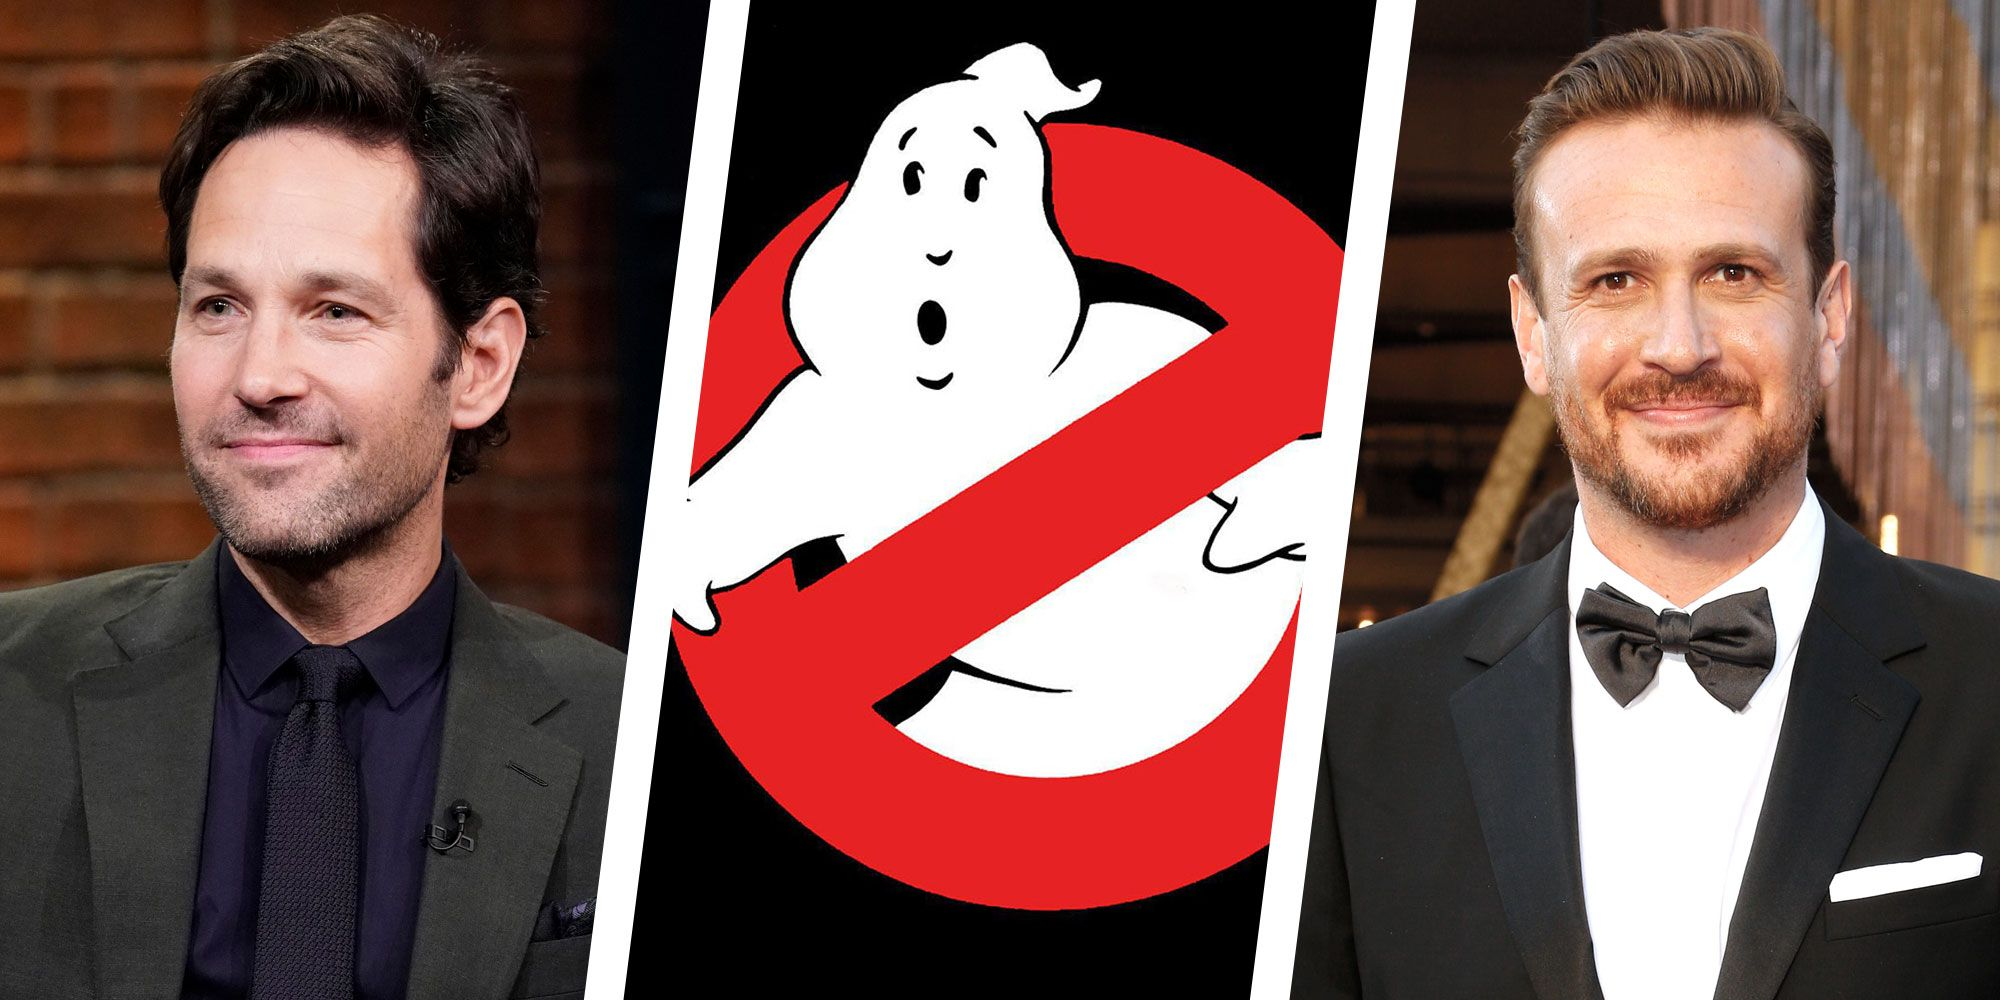 Here's Who Should Be In the Ghostbusters 2020 Cast